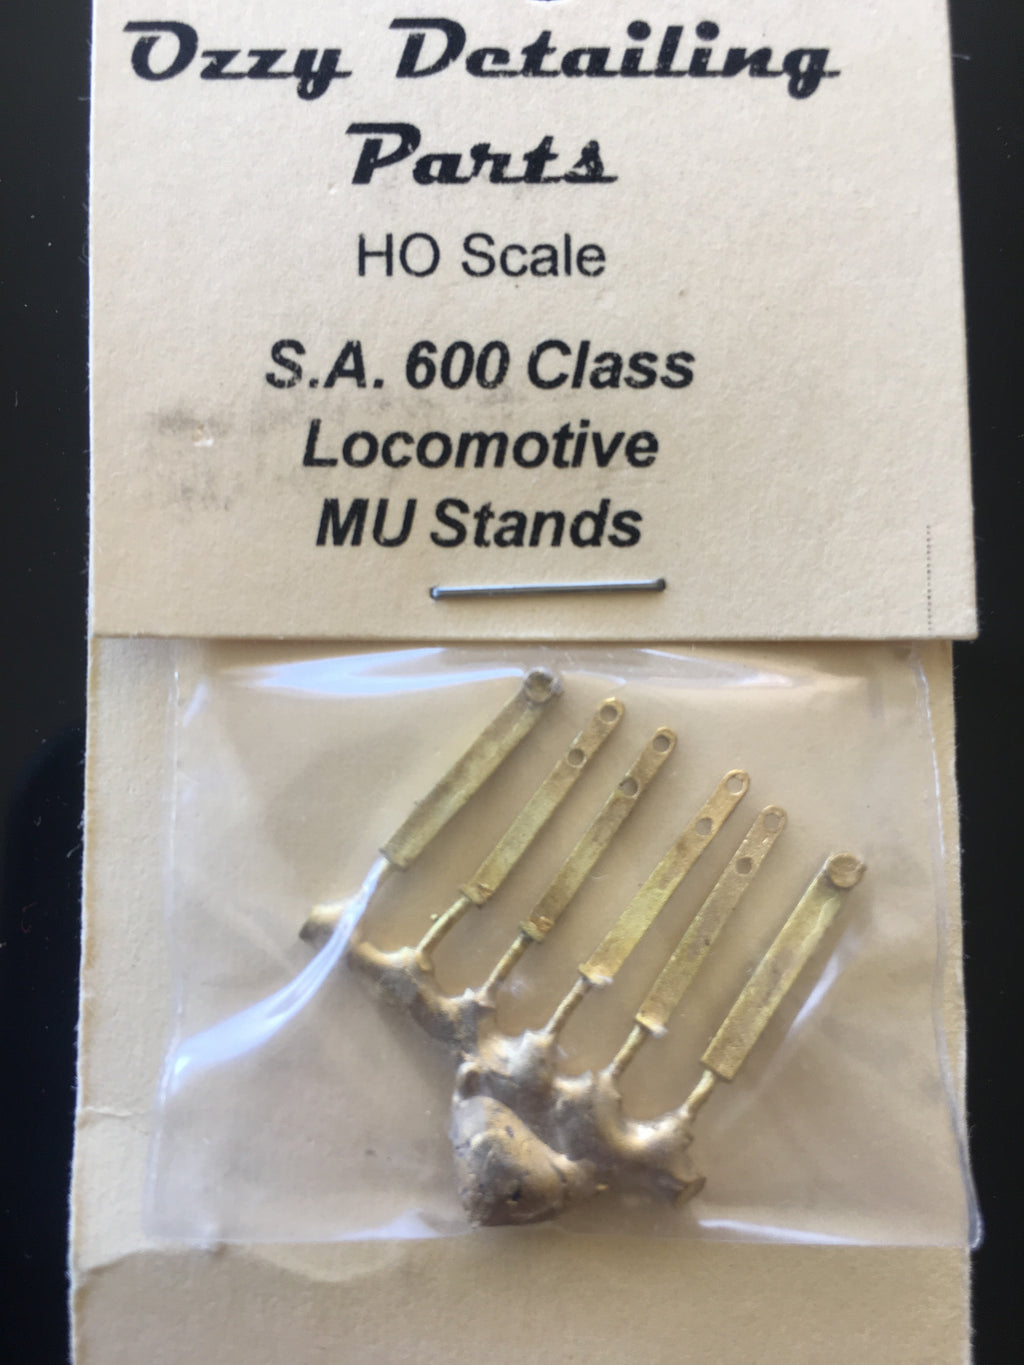 110 - 830 / 600 MU & Handrail Stanchions for 830/600 Class S.A.R. Ozzy Brass #110